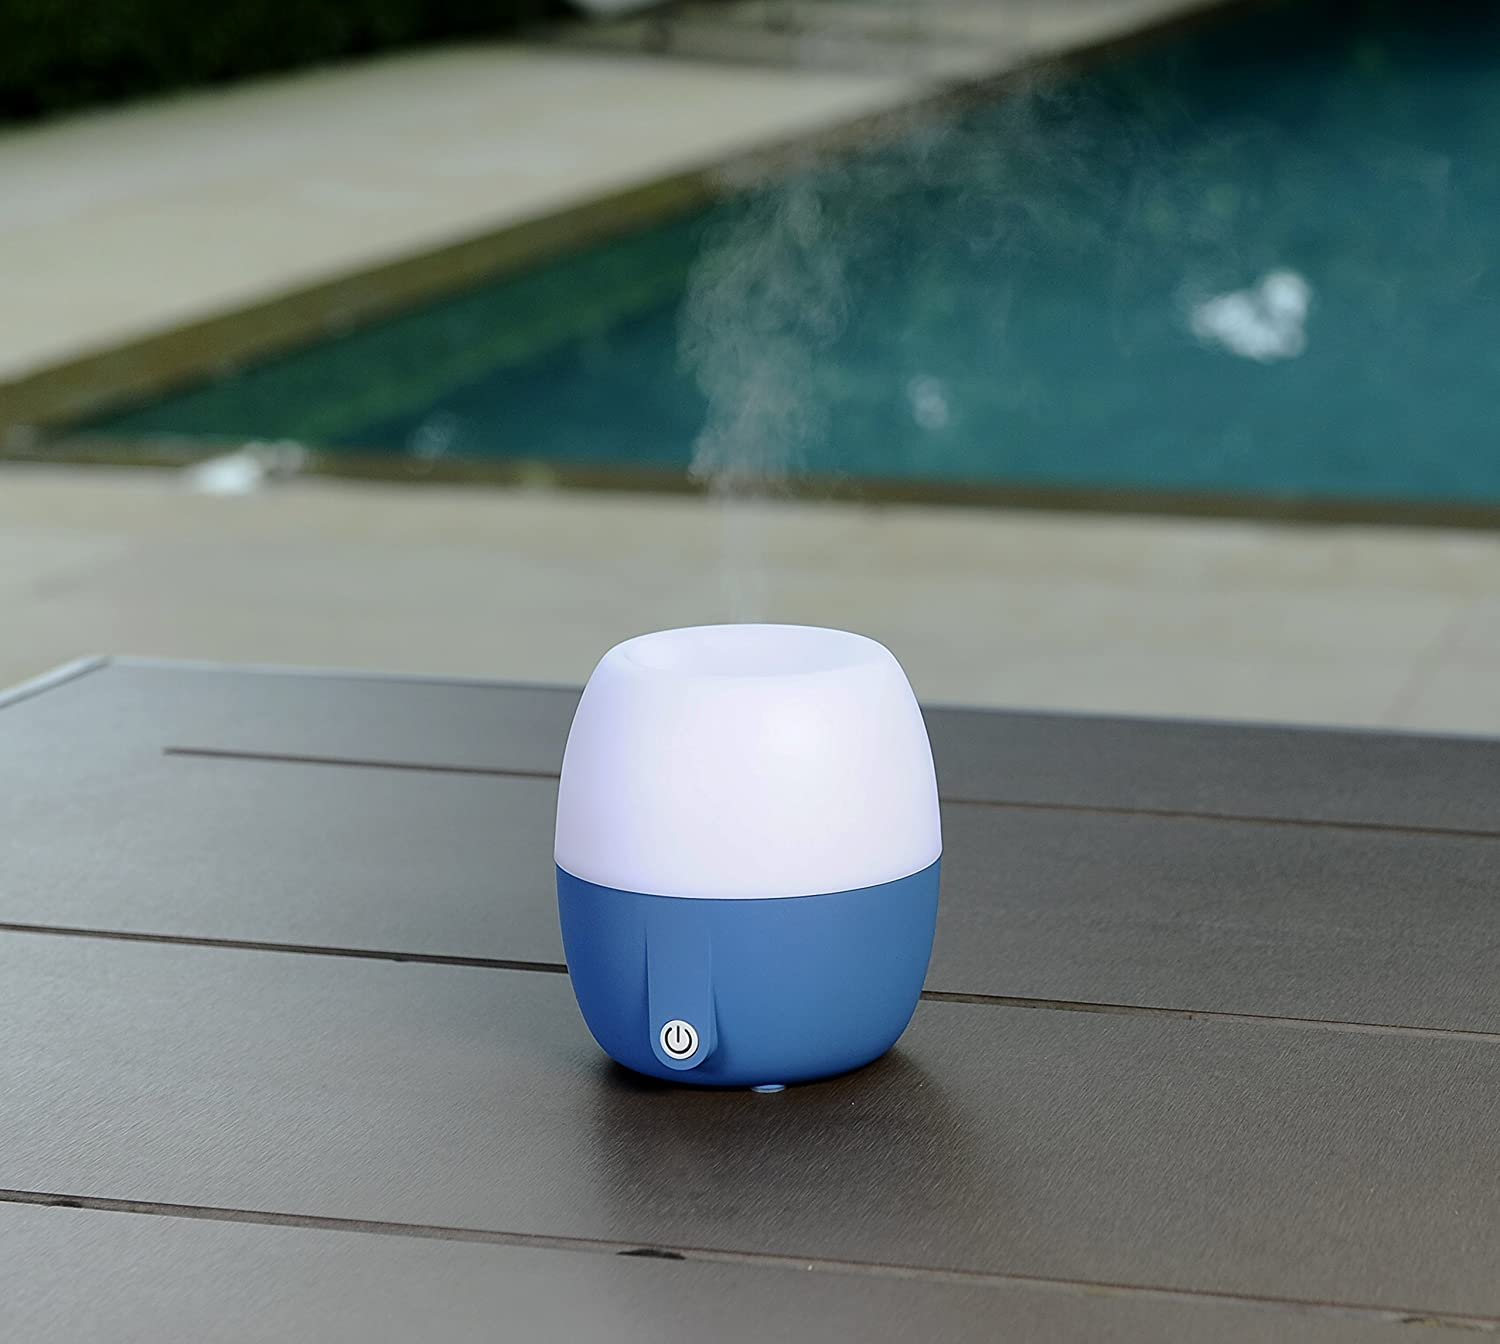 Best Anton Aroma, Scent and Fragrance Air Diffuser, Essential Oil ultrasonic Aromatherapy, Humidifier - Now with Italian Design, 140ml, Extra Long Cord, Timer, Auto Shut Off, Soft Paint, Color LED (Ocean blue) Pilgrim Collection